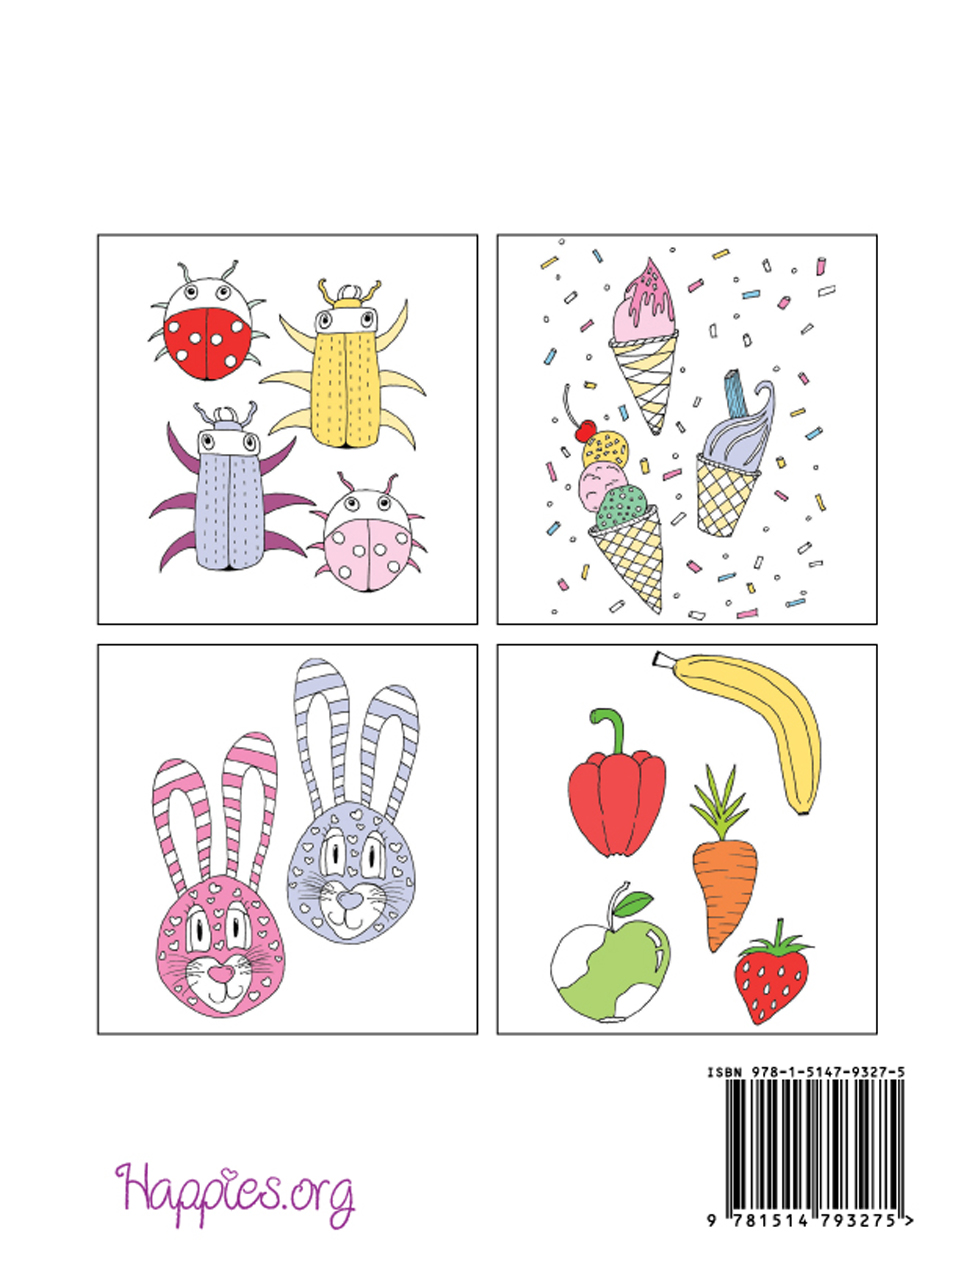 Happies - Stress Relieving Coloring Book for Kids